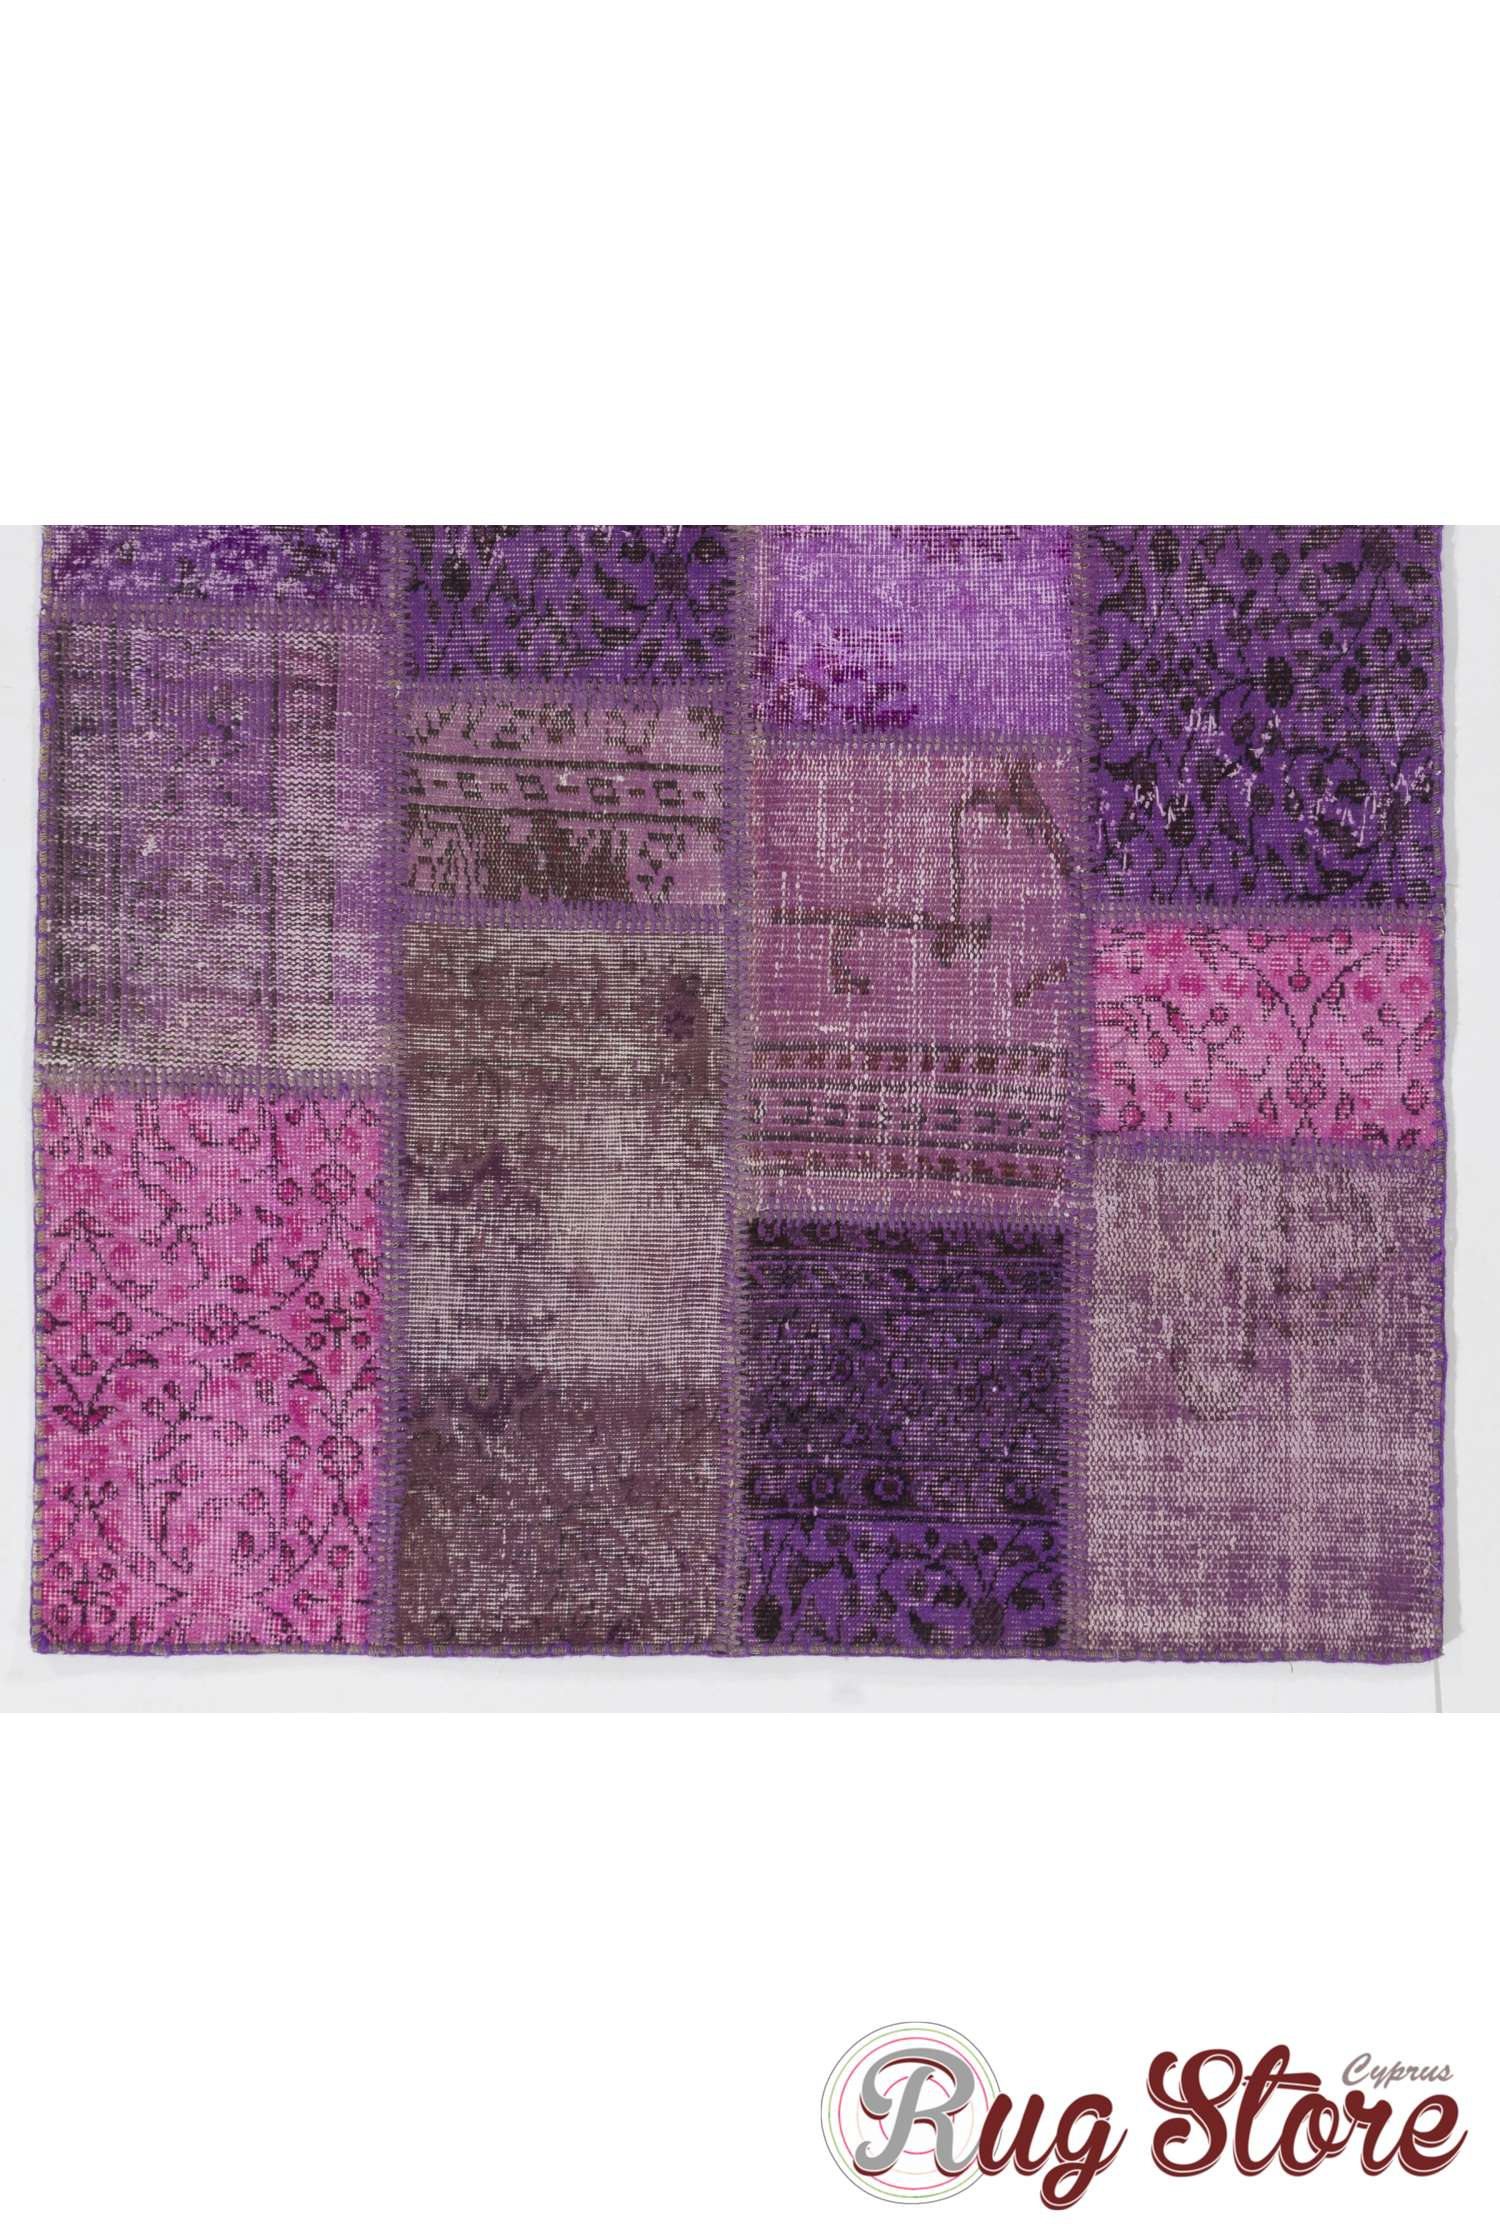 4 X 6 Purple Lavender And Orchid Colored Patchwork Rug